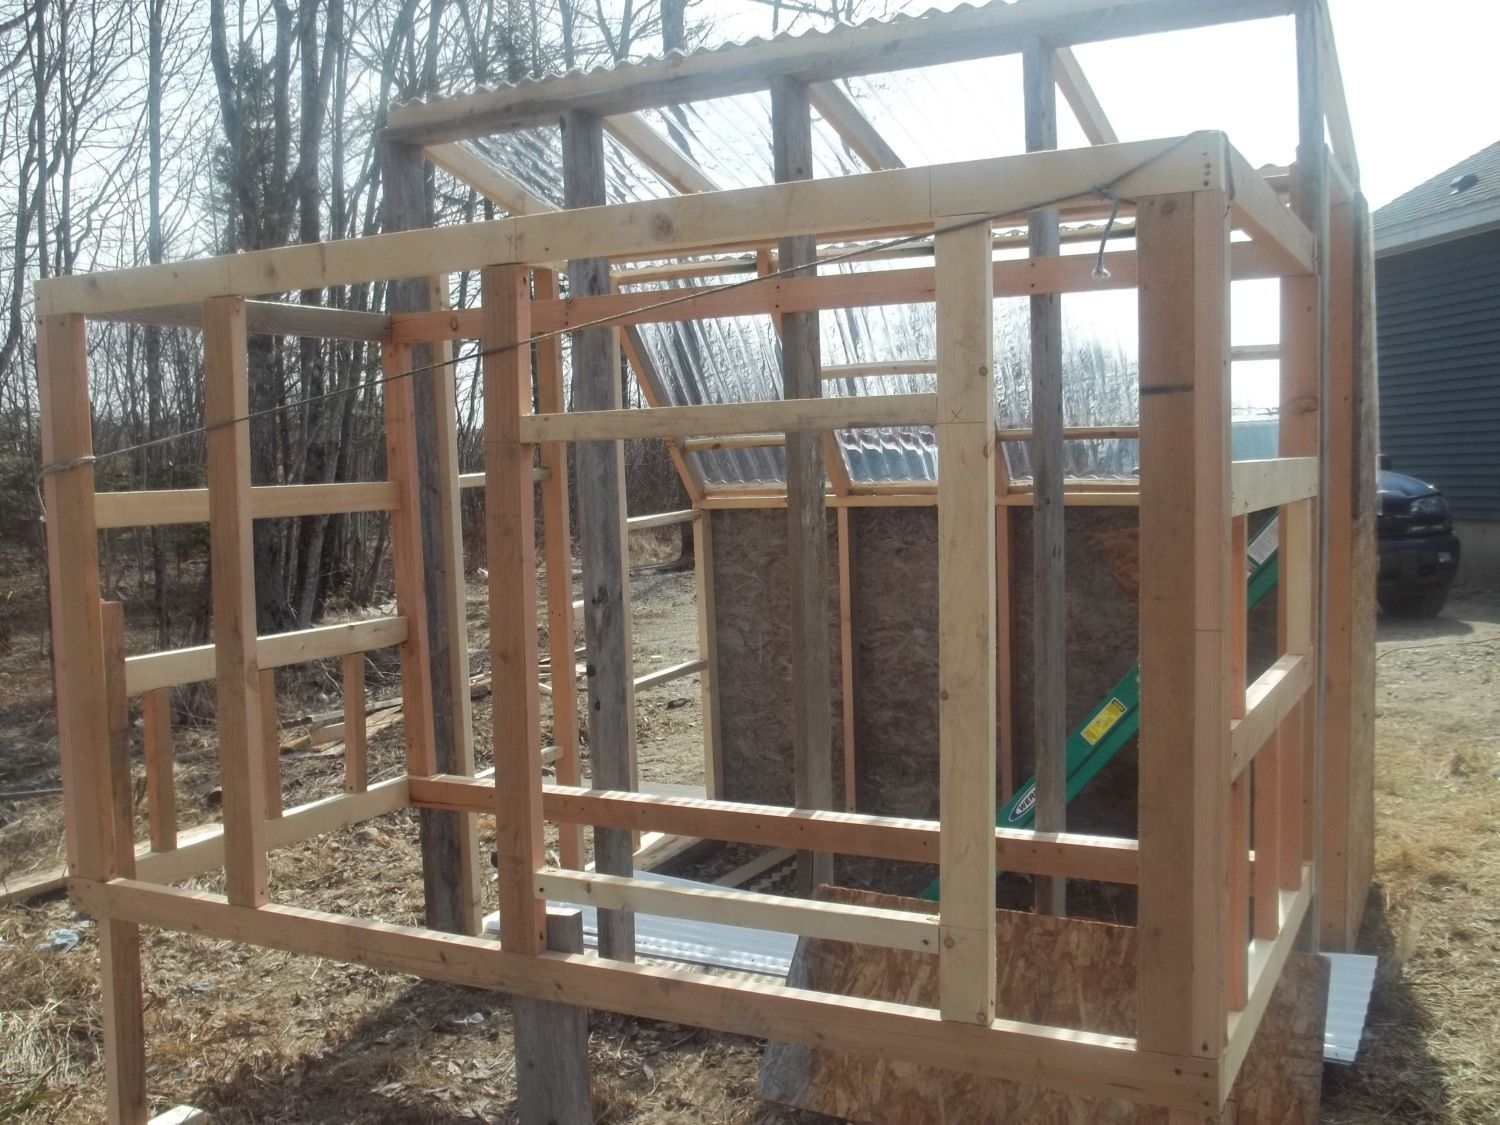 2'X2' door framed along with the back wall